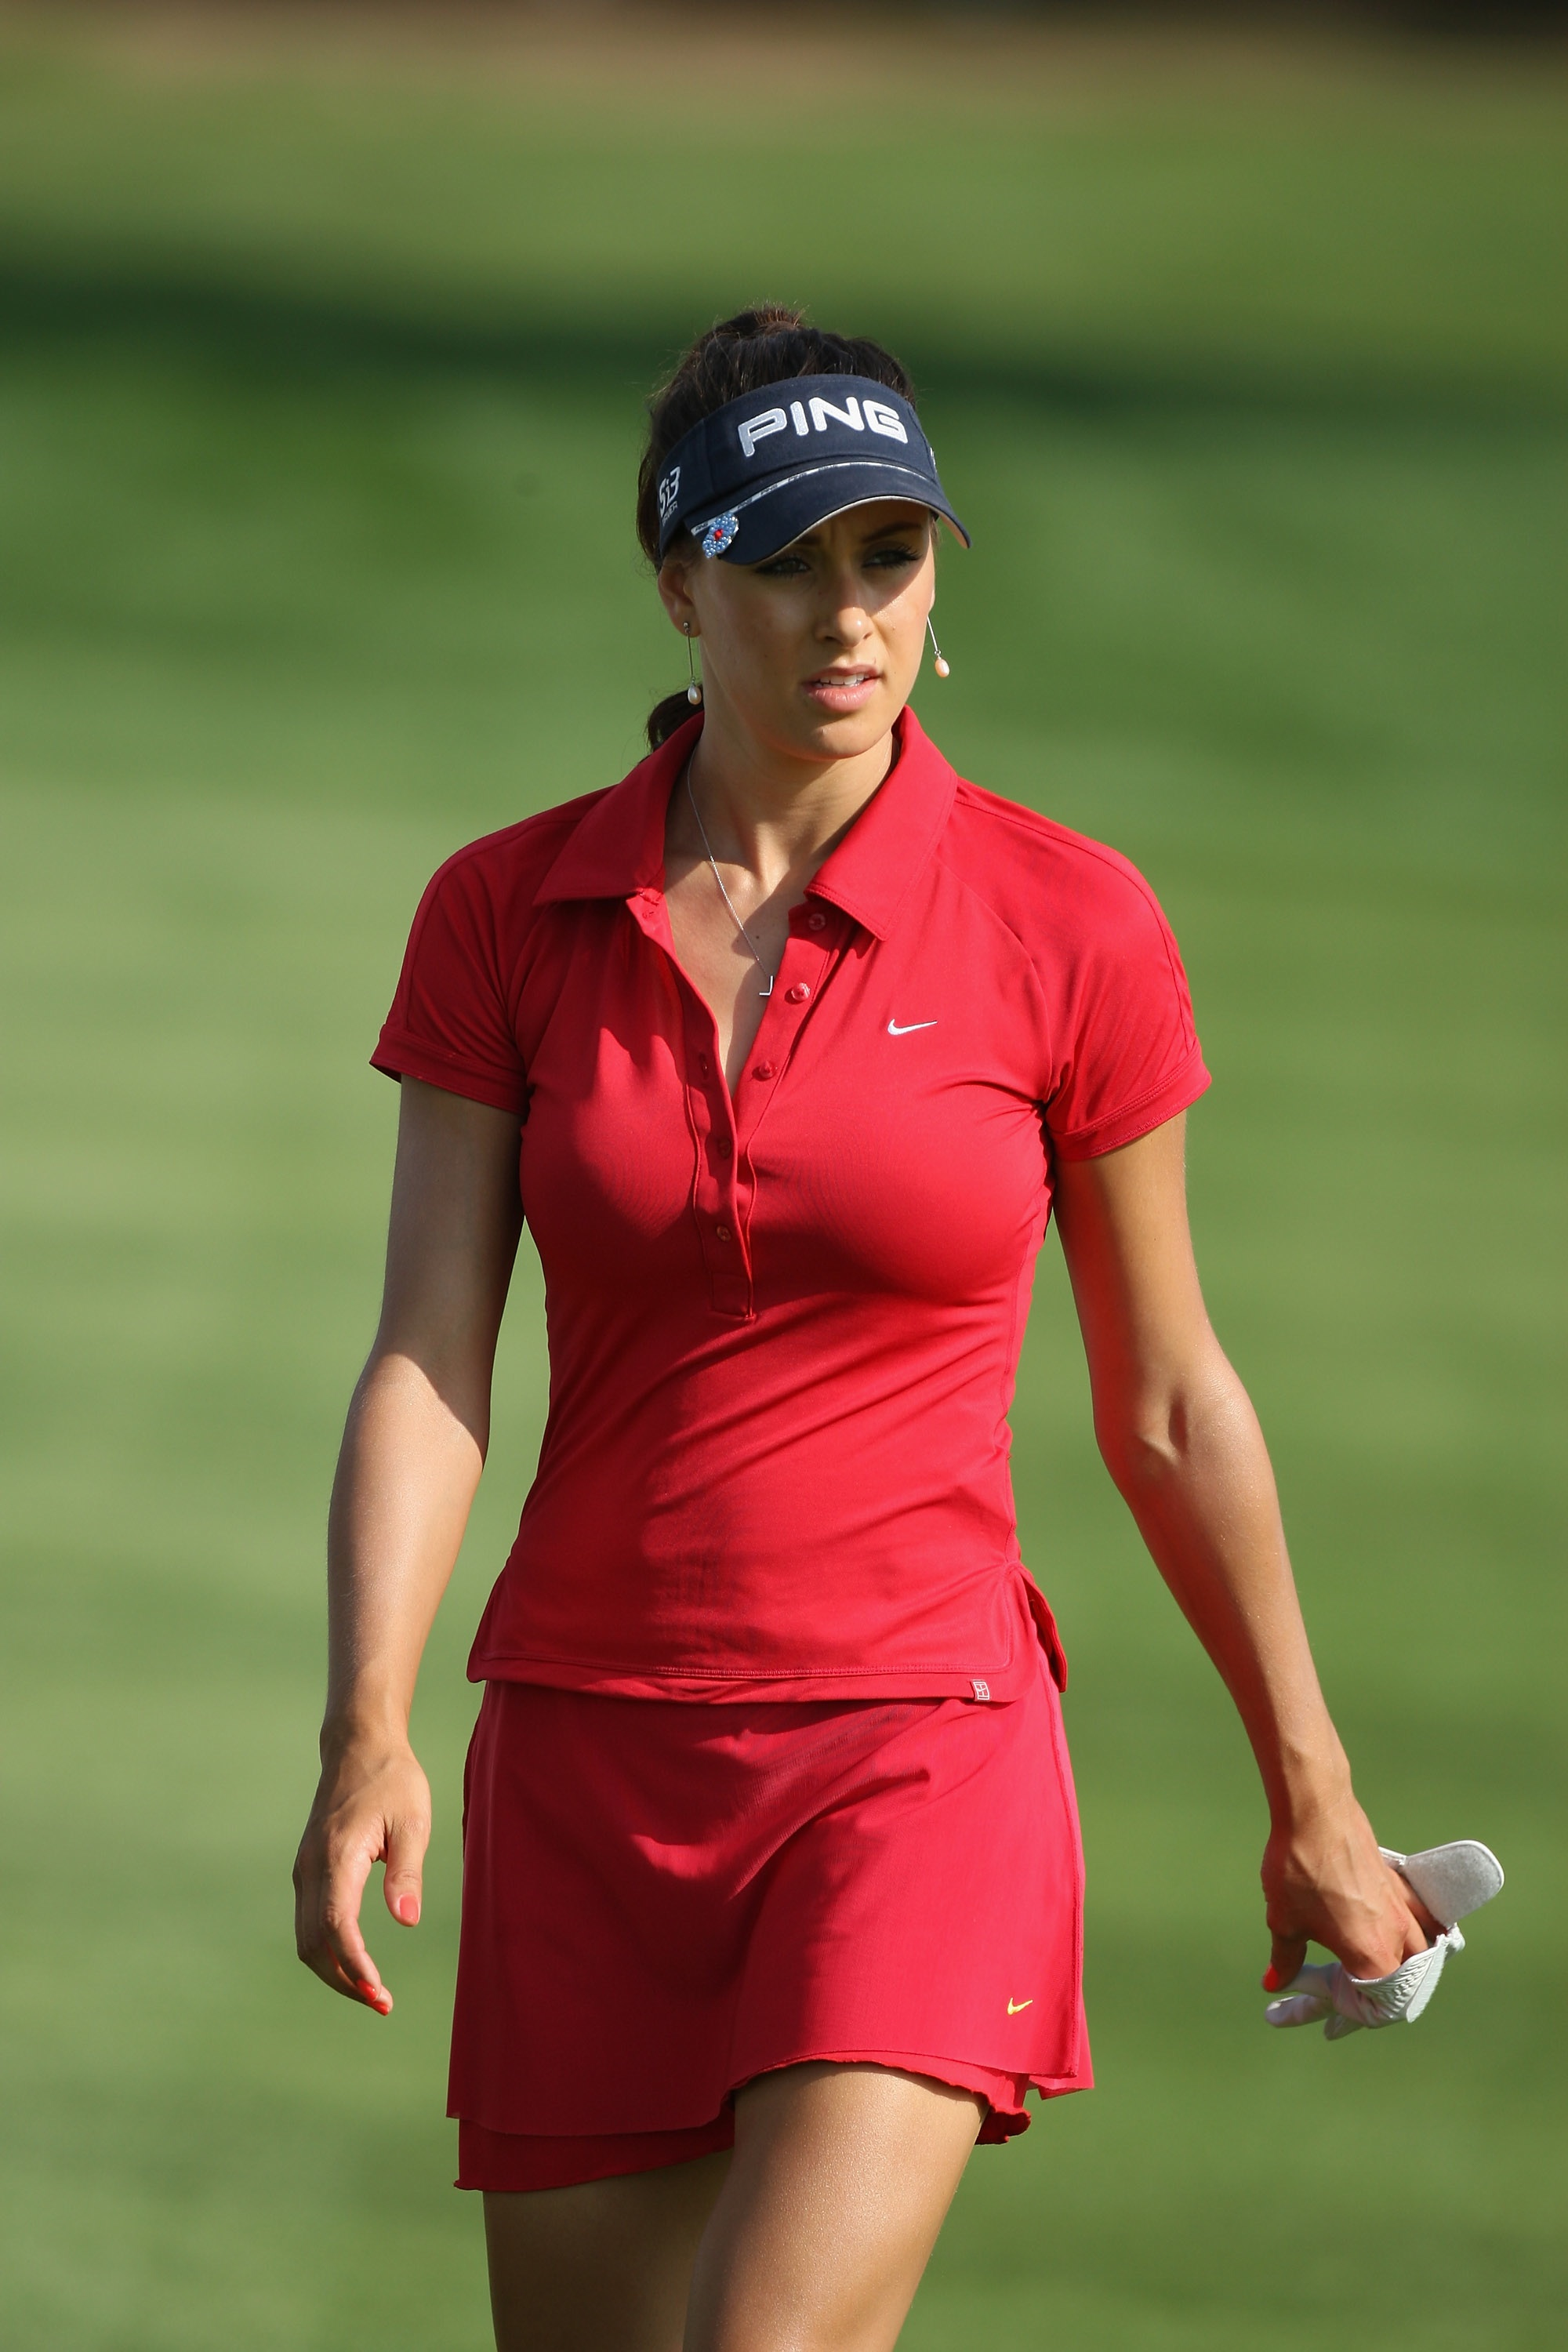 Maria Verchenova of Russia walks up the fairway during the third round of the Dubai Ladies Masters.